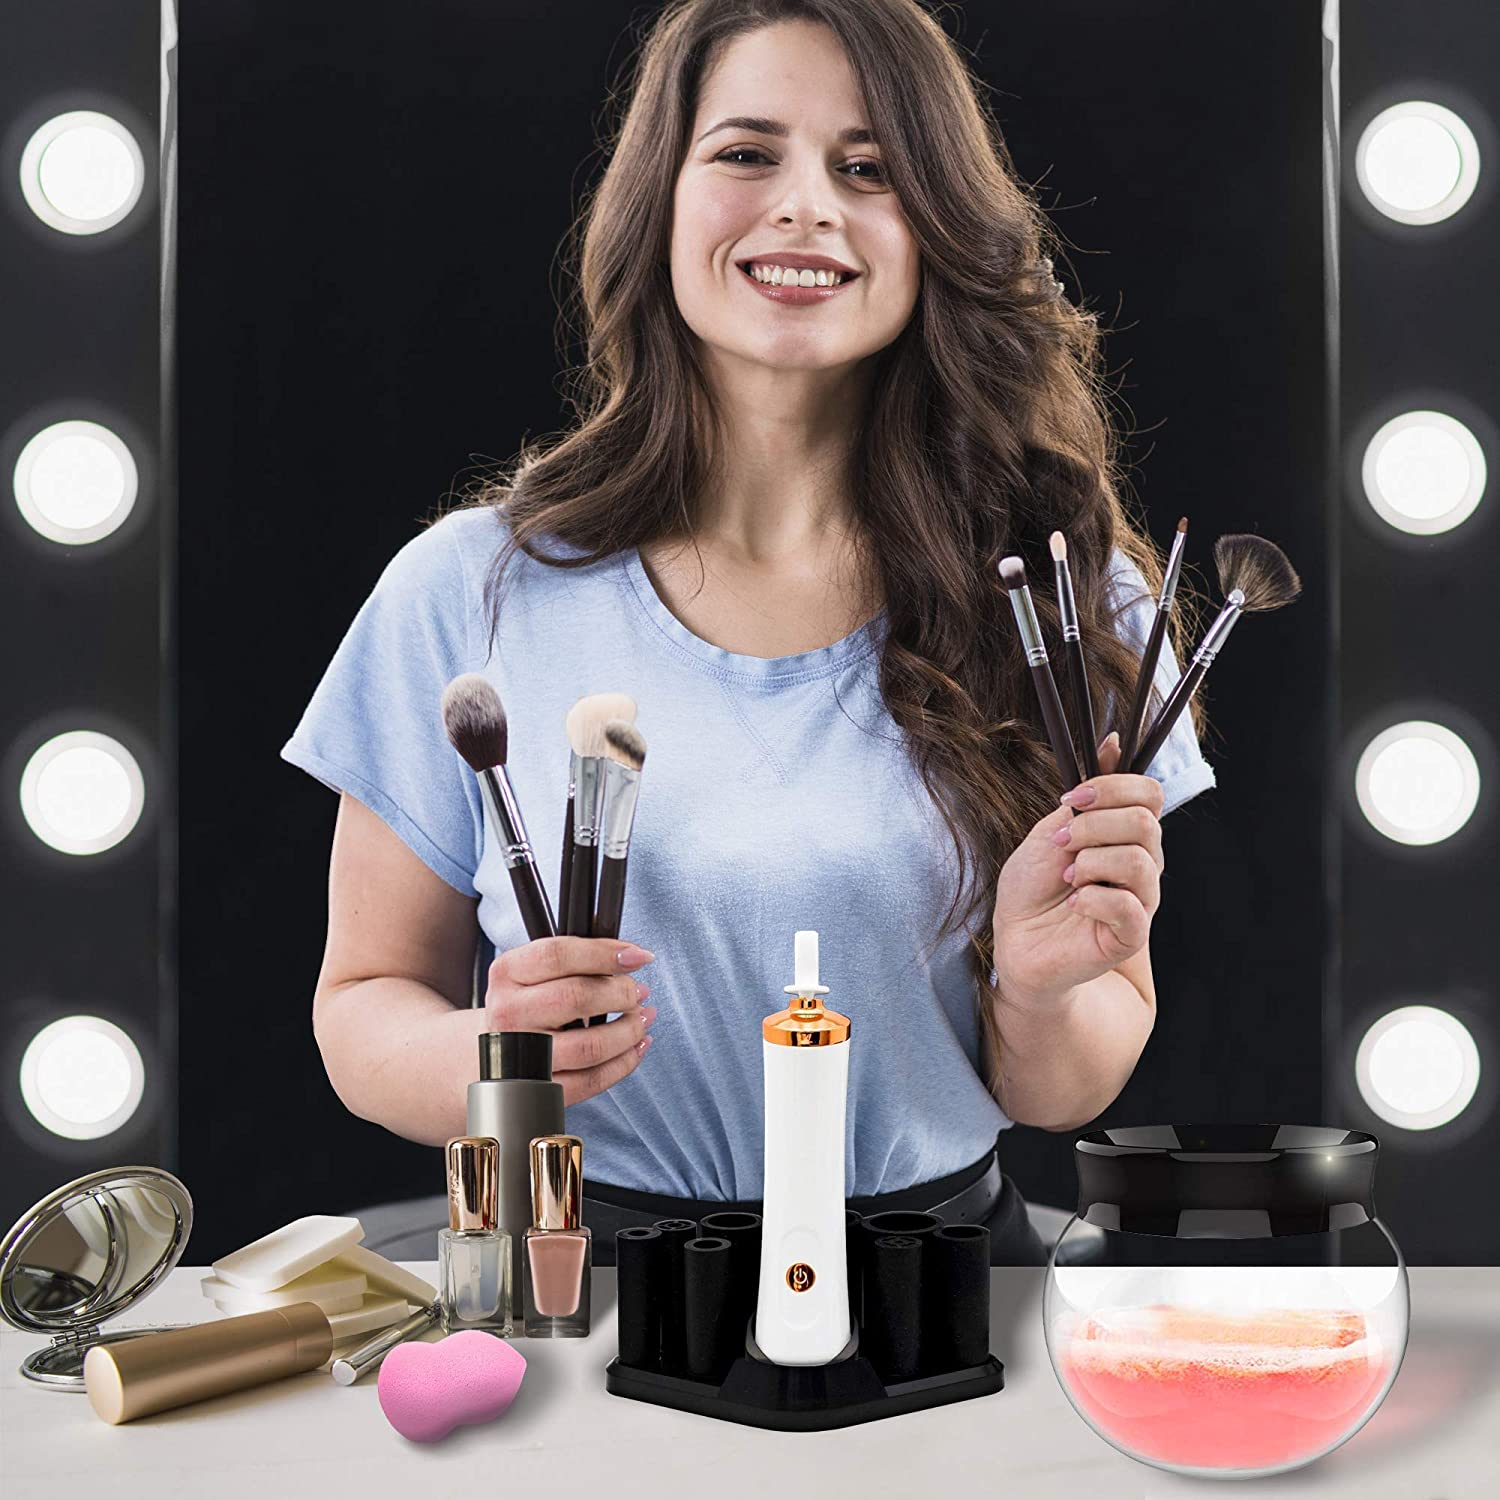 Edook Makeup Brush Cleaner and Dryer - Automatic Deep and Fast Cleaning, Fits Different Brushes, Includes Free Makeup Sponge: Beauty